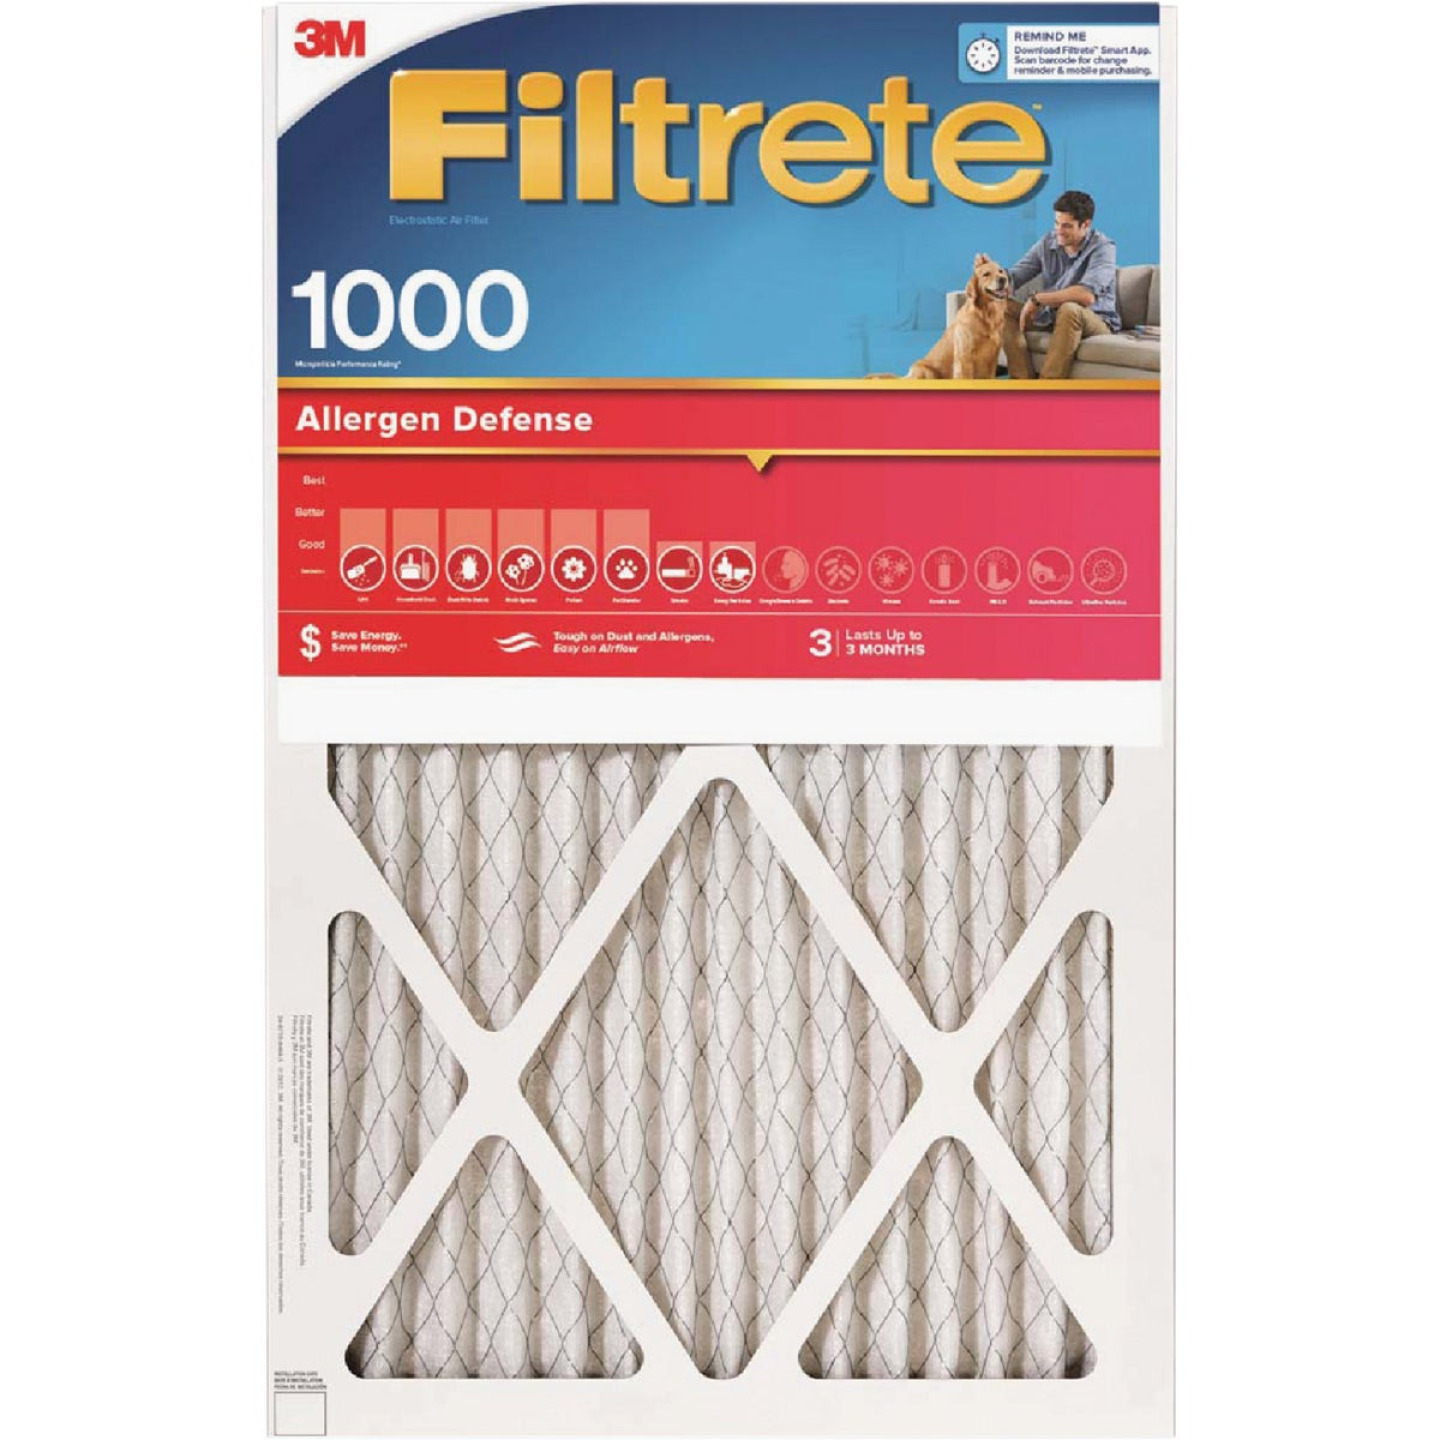 3M Filtrete 12 In. x 20 In. x 1 In. Allergen Defense 1000/1085 MPR Furnace Filter Image 1